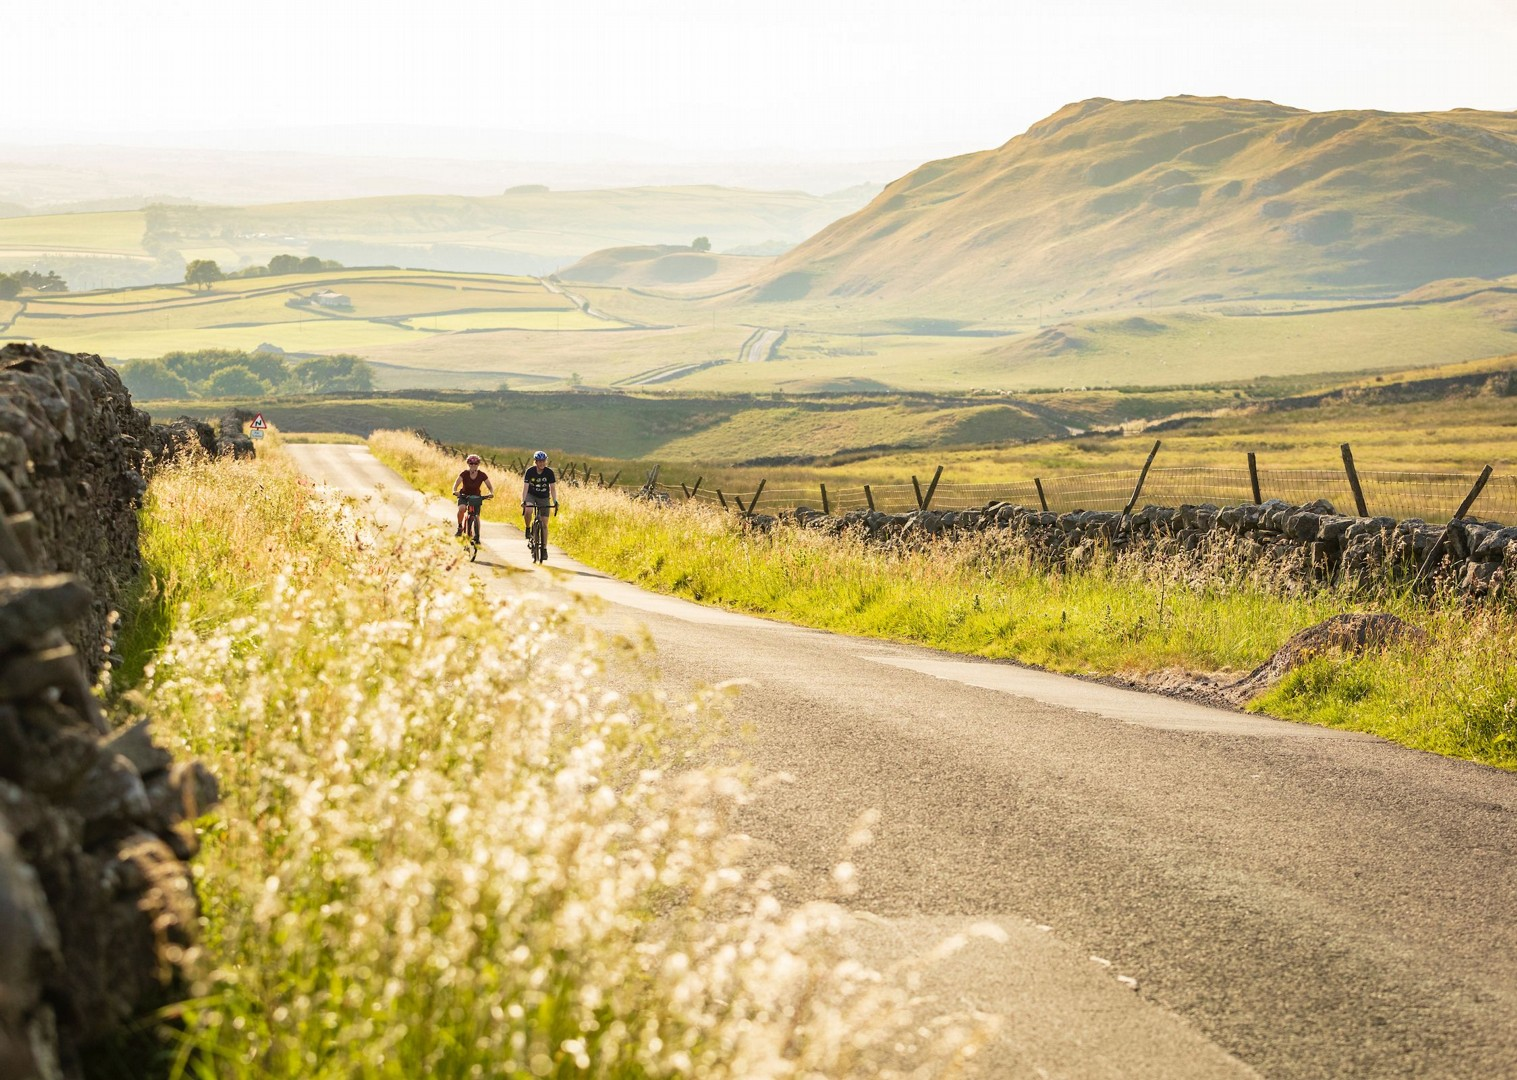 english-countryside-bike-tour-yorkshire-cycle-tracks.jpg - UK - Way of the Roses - Supported Leisure Cycling Holiday - Leisure Cycling